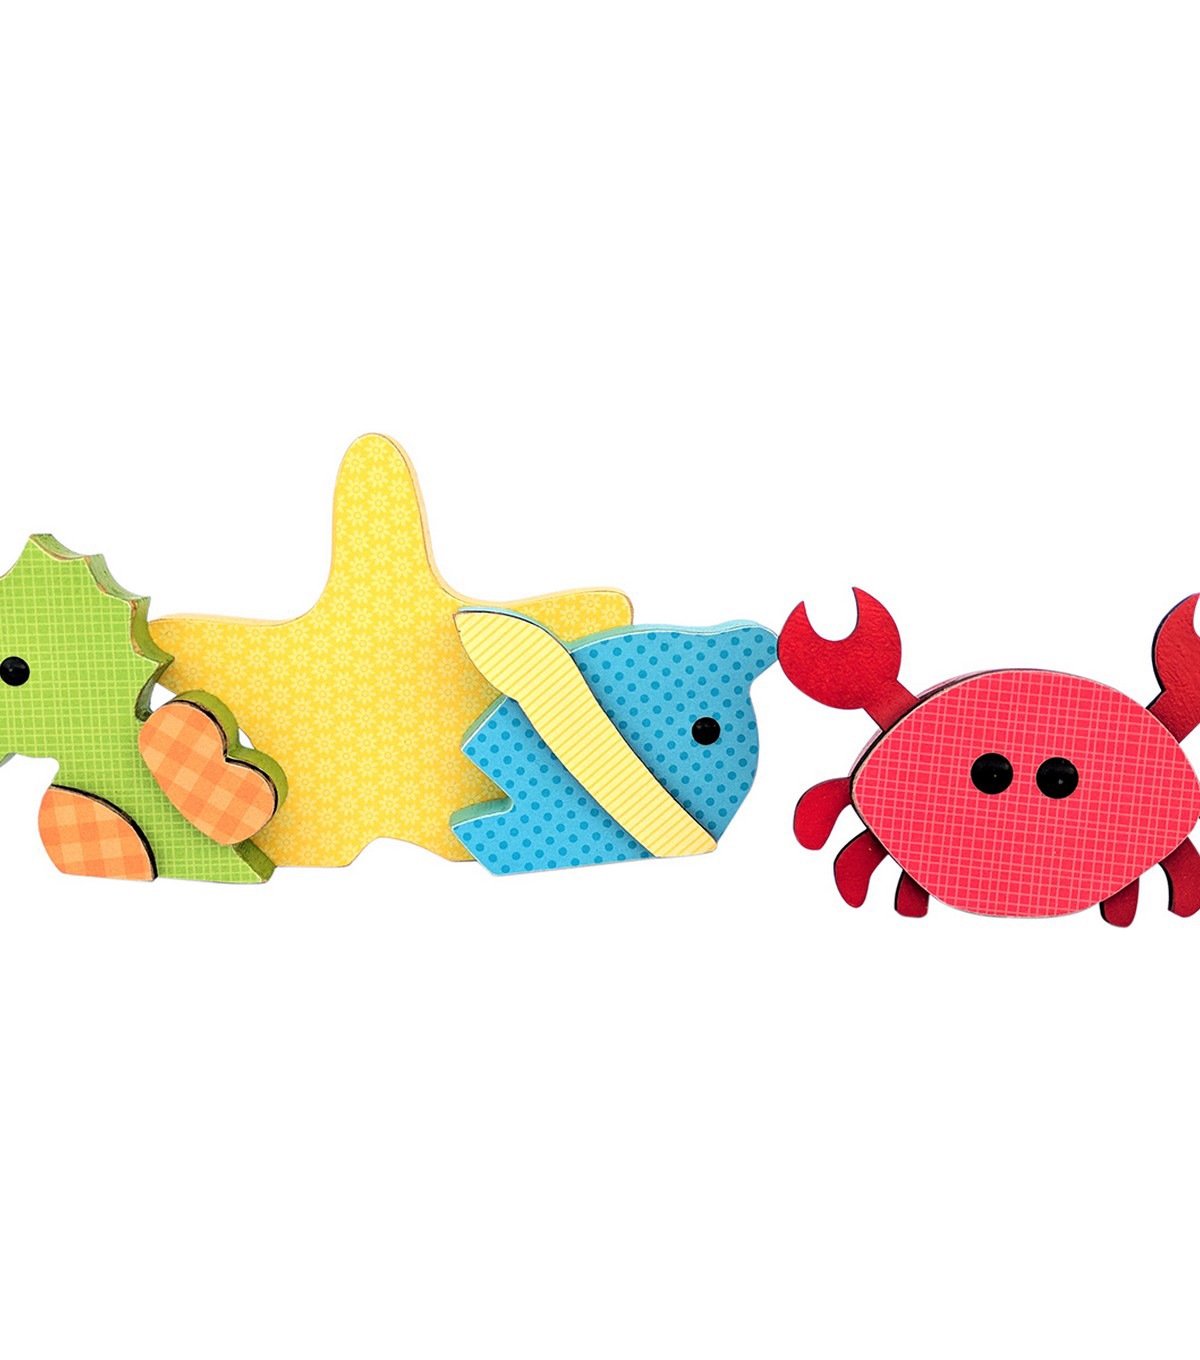 Foundations Decor Wood August Sea Creatures 4/Pk